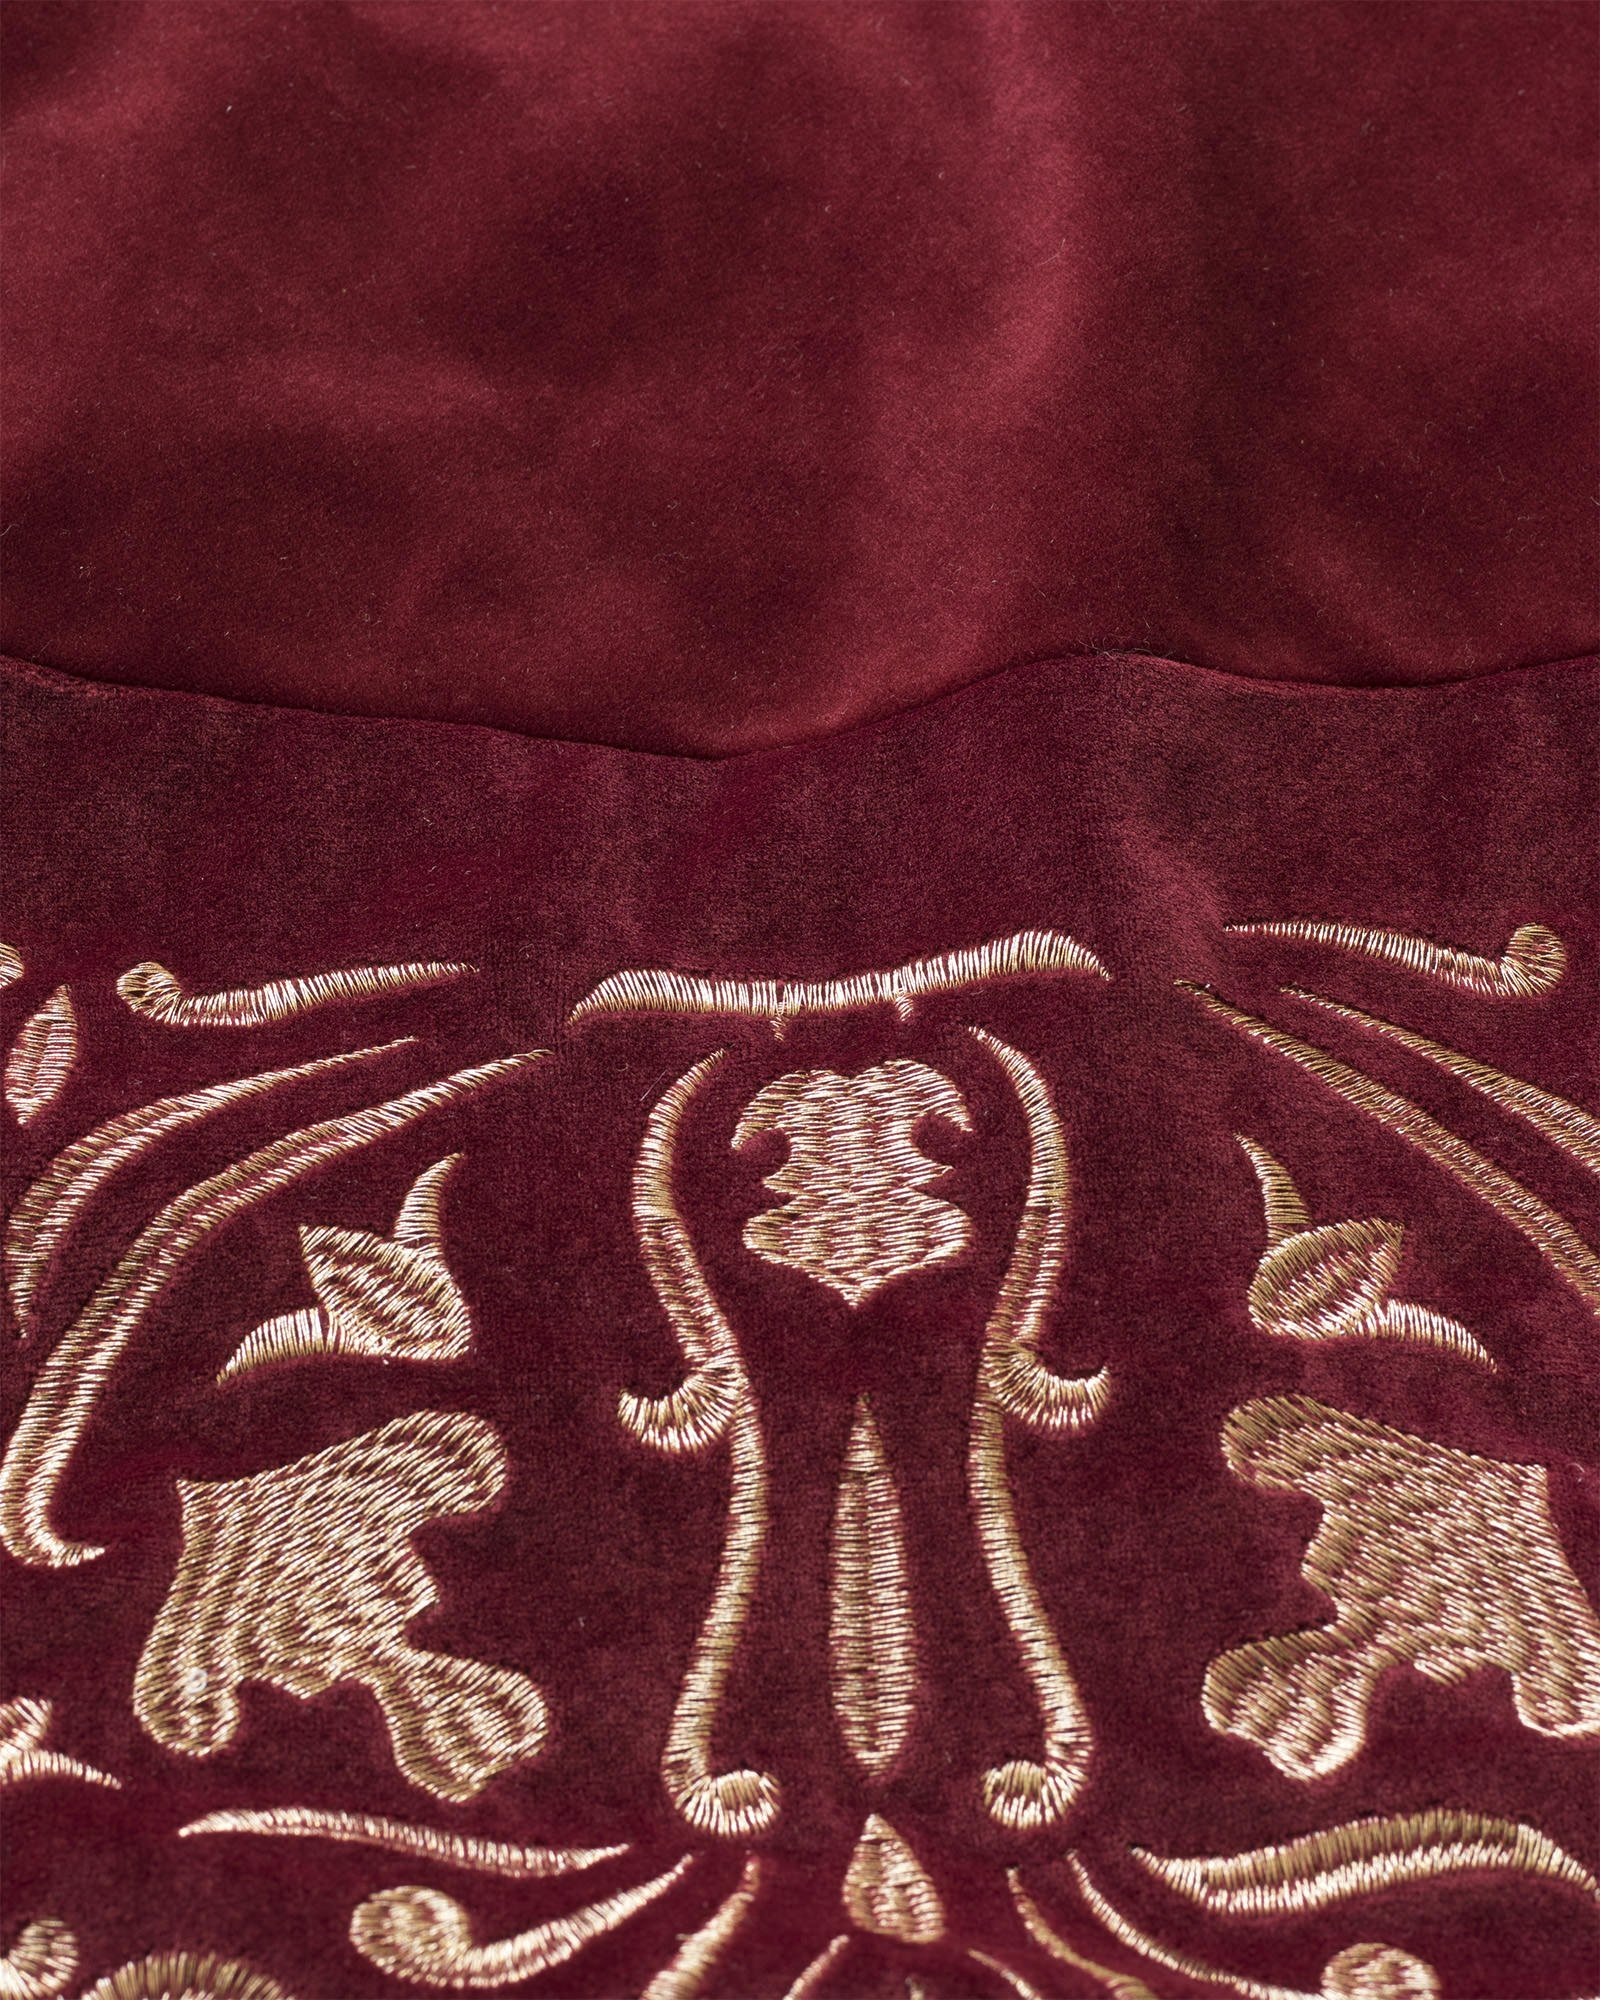 Balsam Hill Luxe Embroidered Velvet Tree Skirt, 60 inches, Wine by Balsam Hill (Image #3)